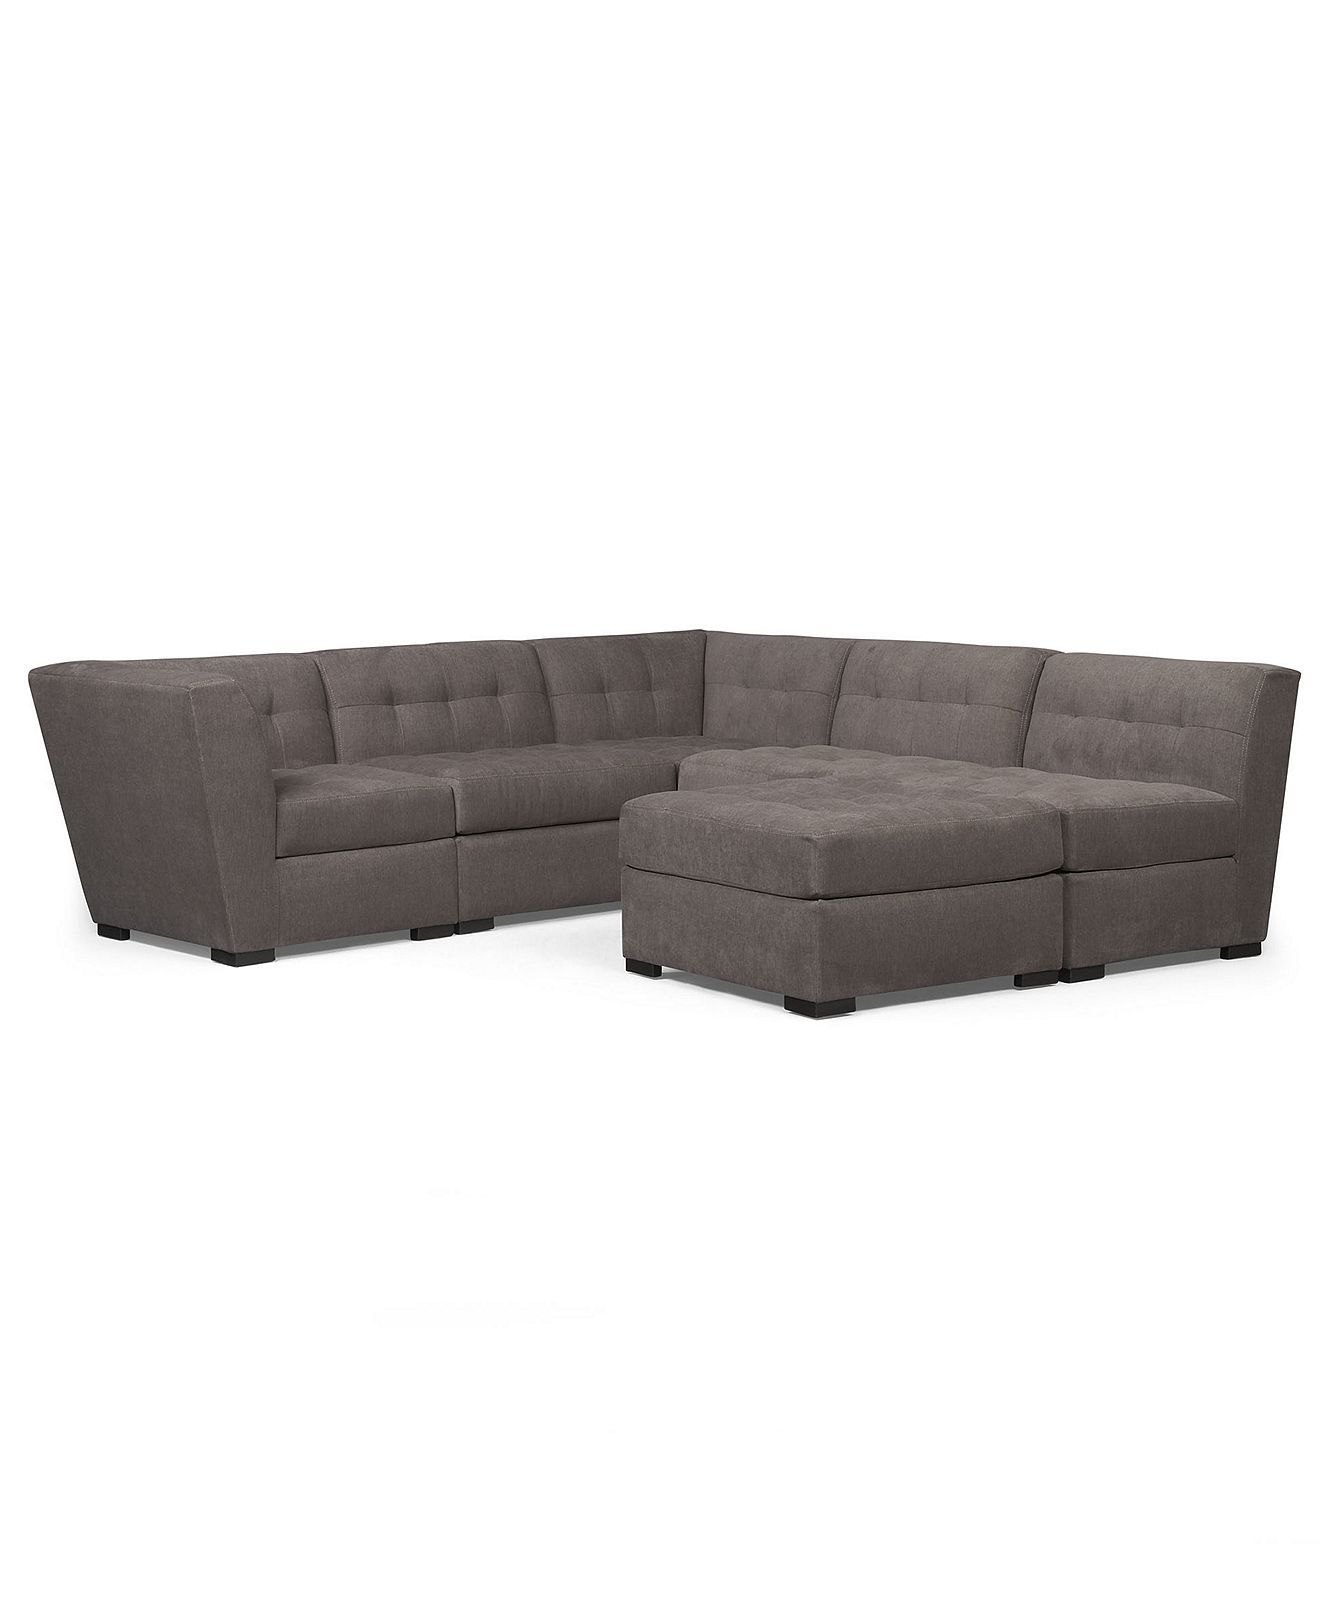 Best Roxanne Fabric Modular Sectional Sofa 6 Piece 2 Square 640 x 480